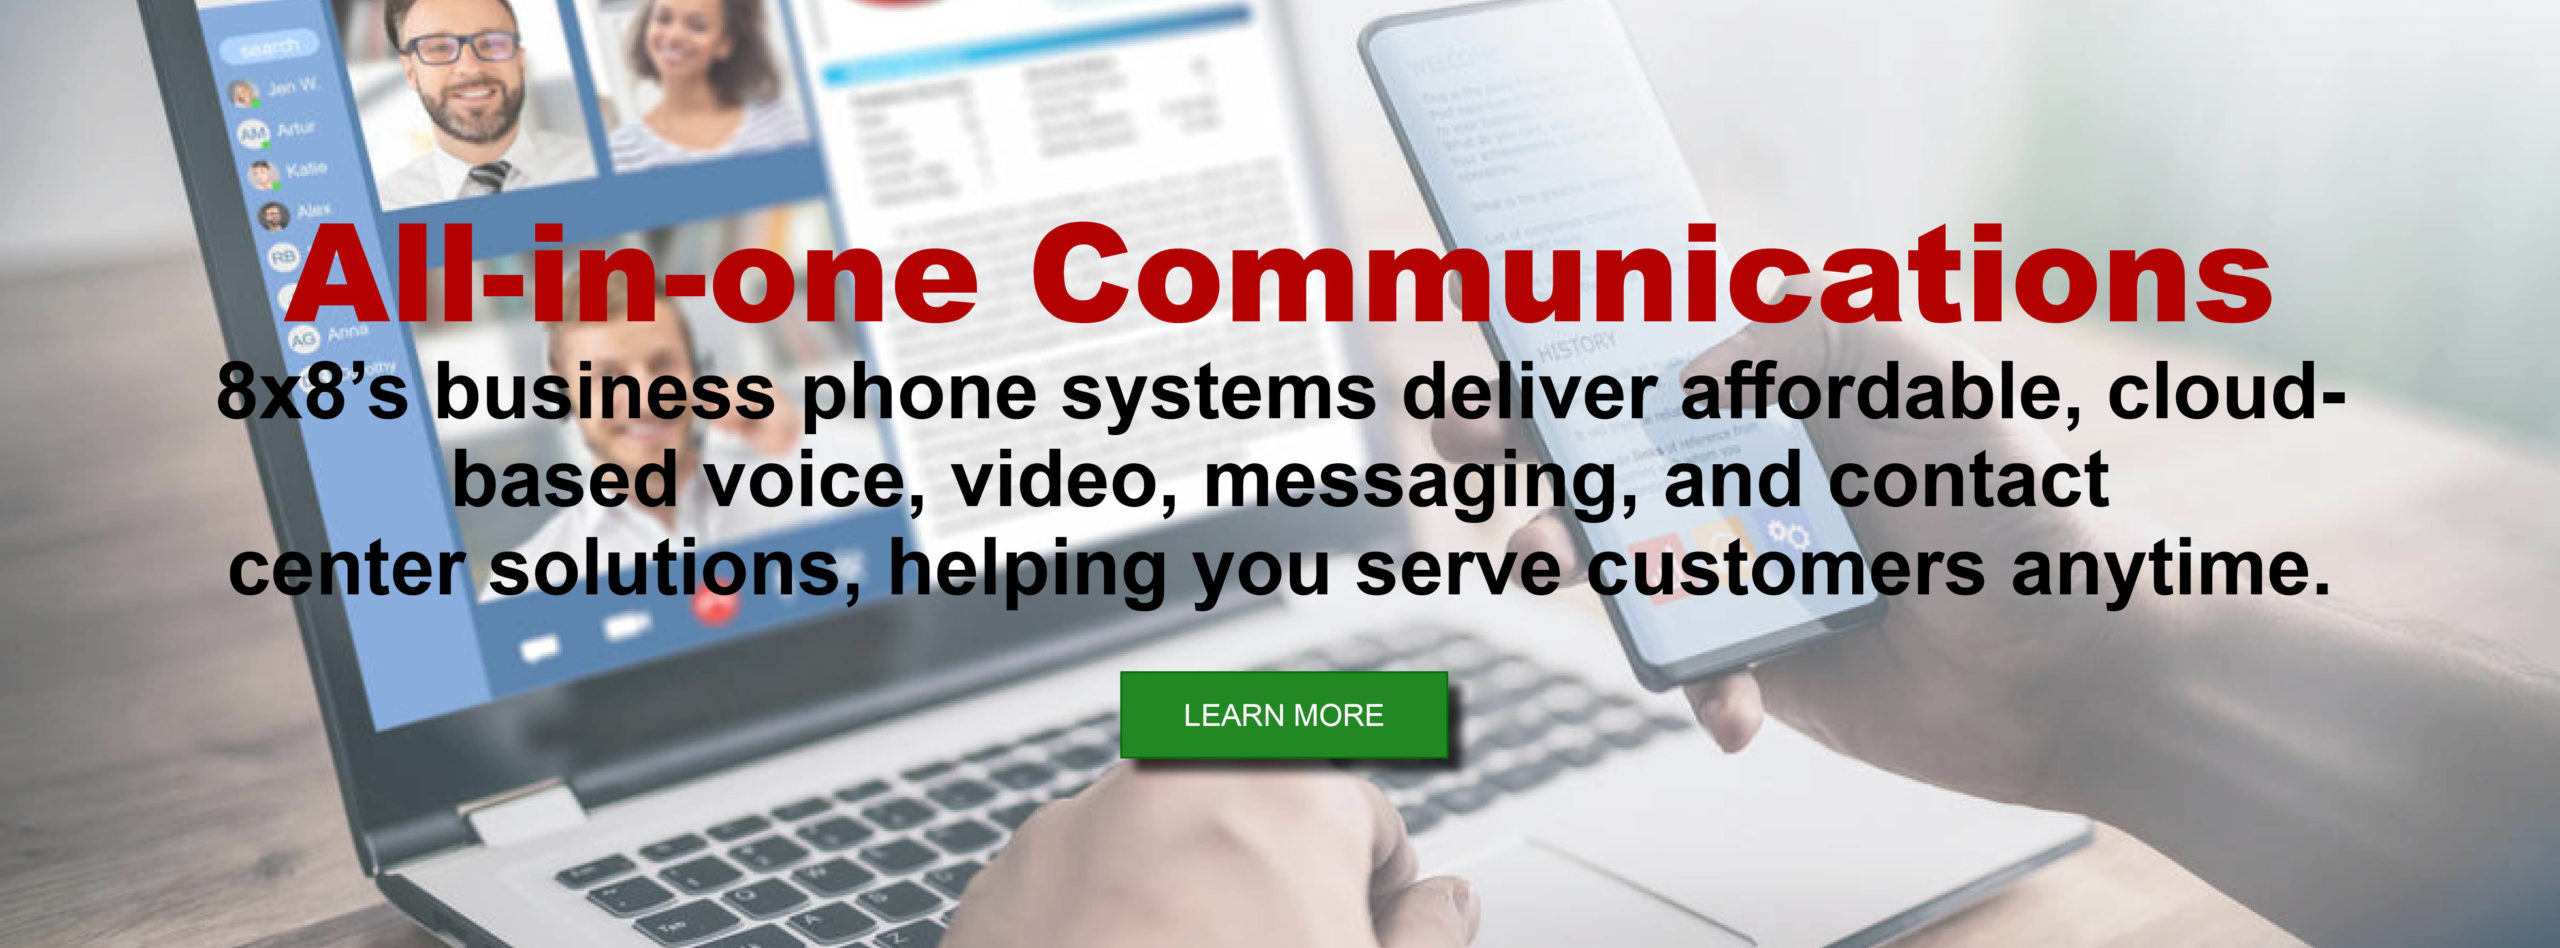 managed services phone services banner #6